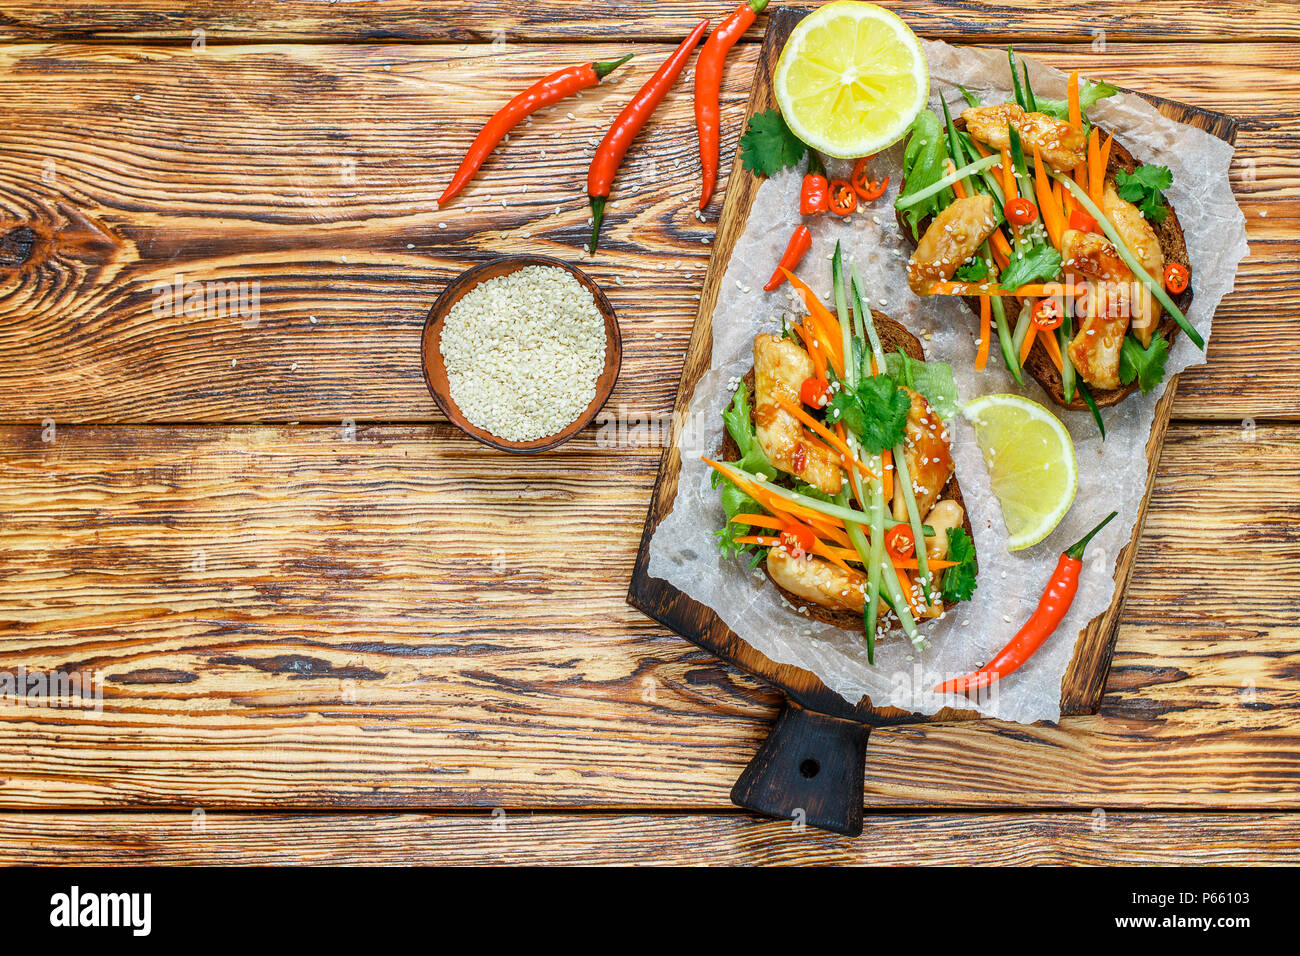 Asian sandwich with fried chicken and fresh vegetables-carrots, cucumber, chili pepper, cilantro and sesame. Selective focus. Top view and copy space - Stock Image